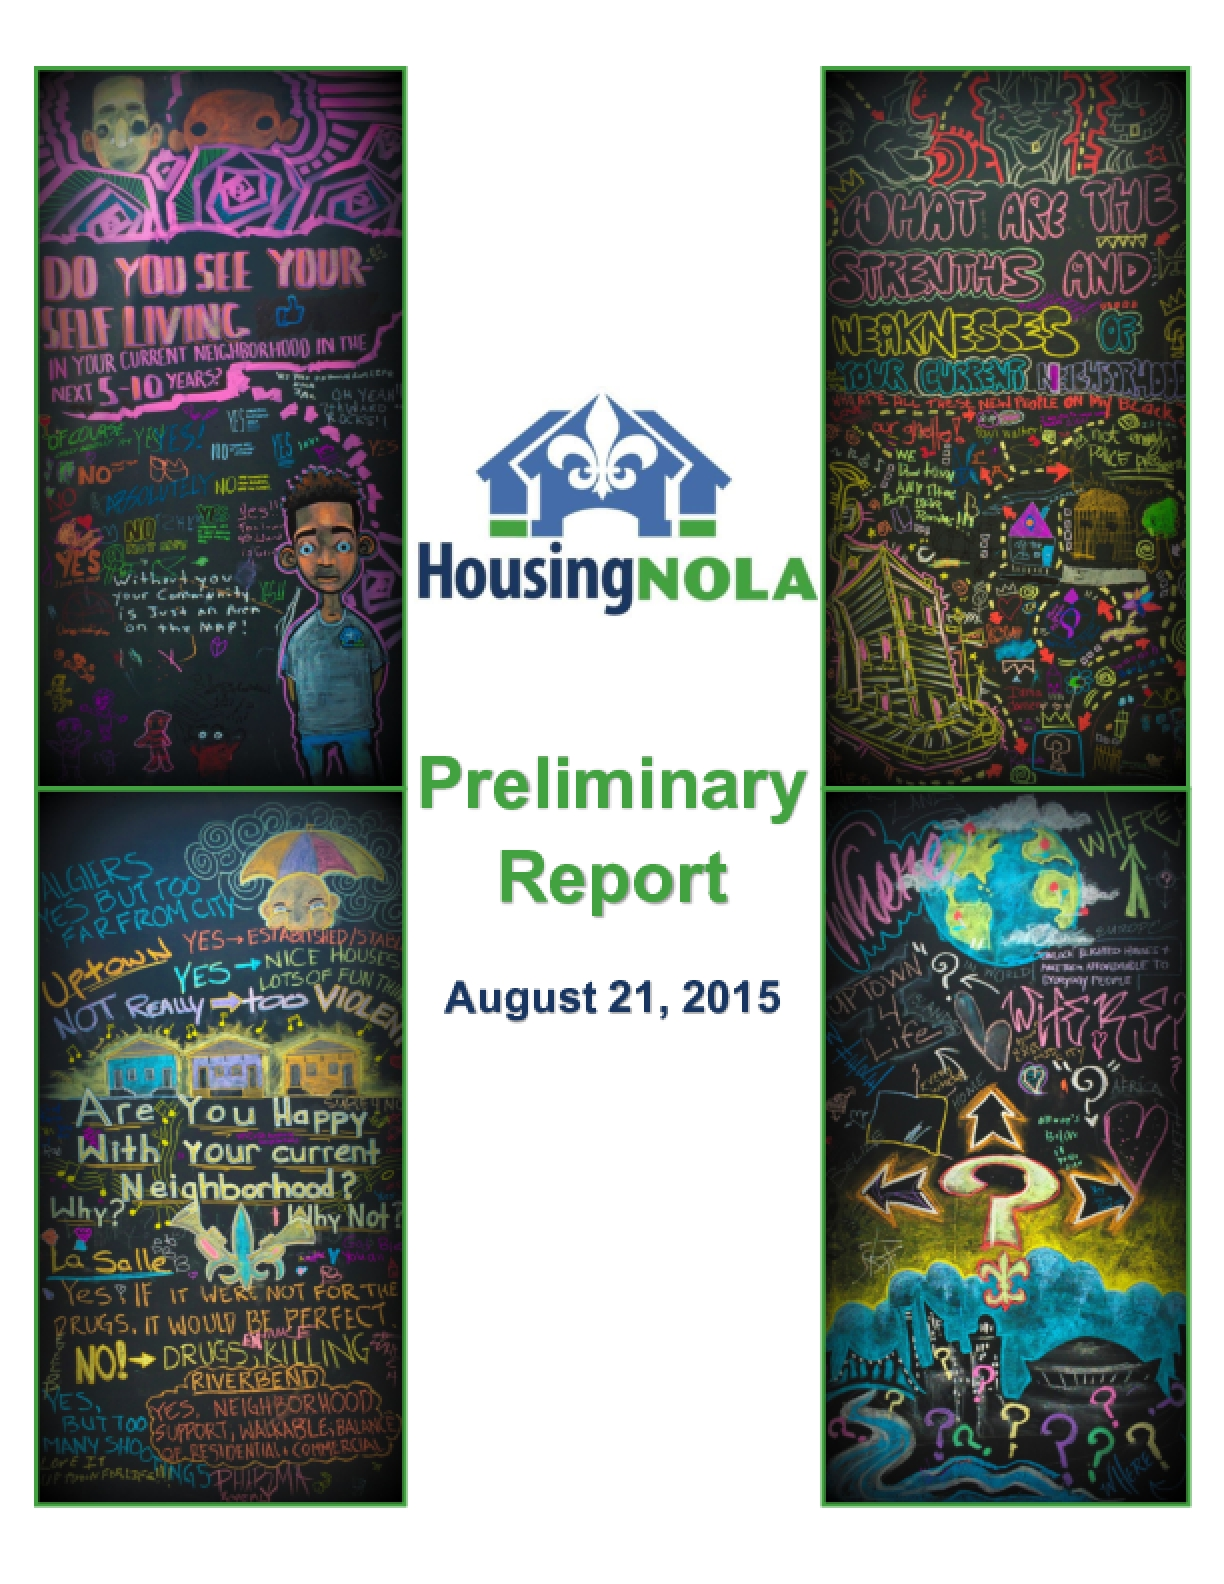 HousingNOLA Preliminary Report